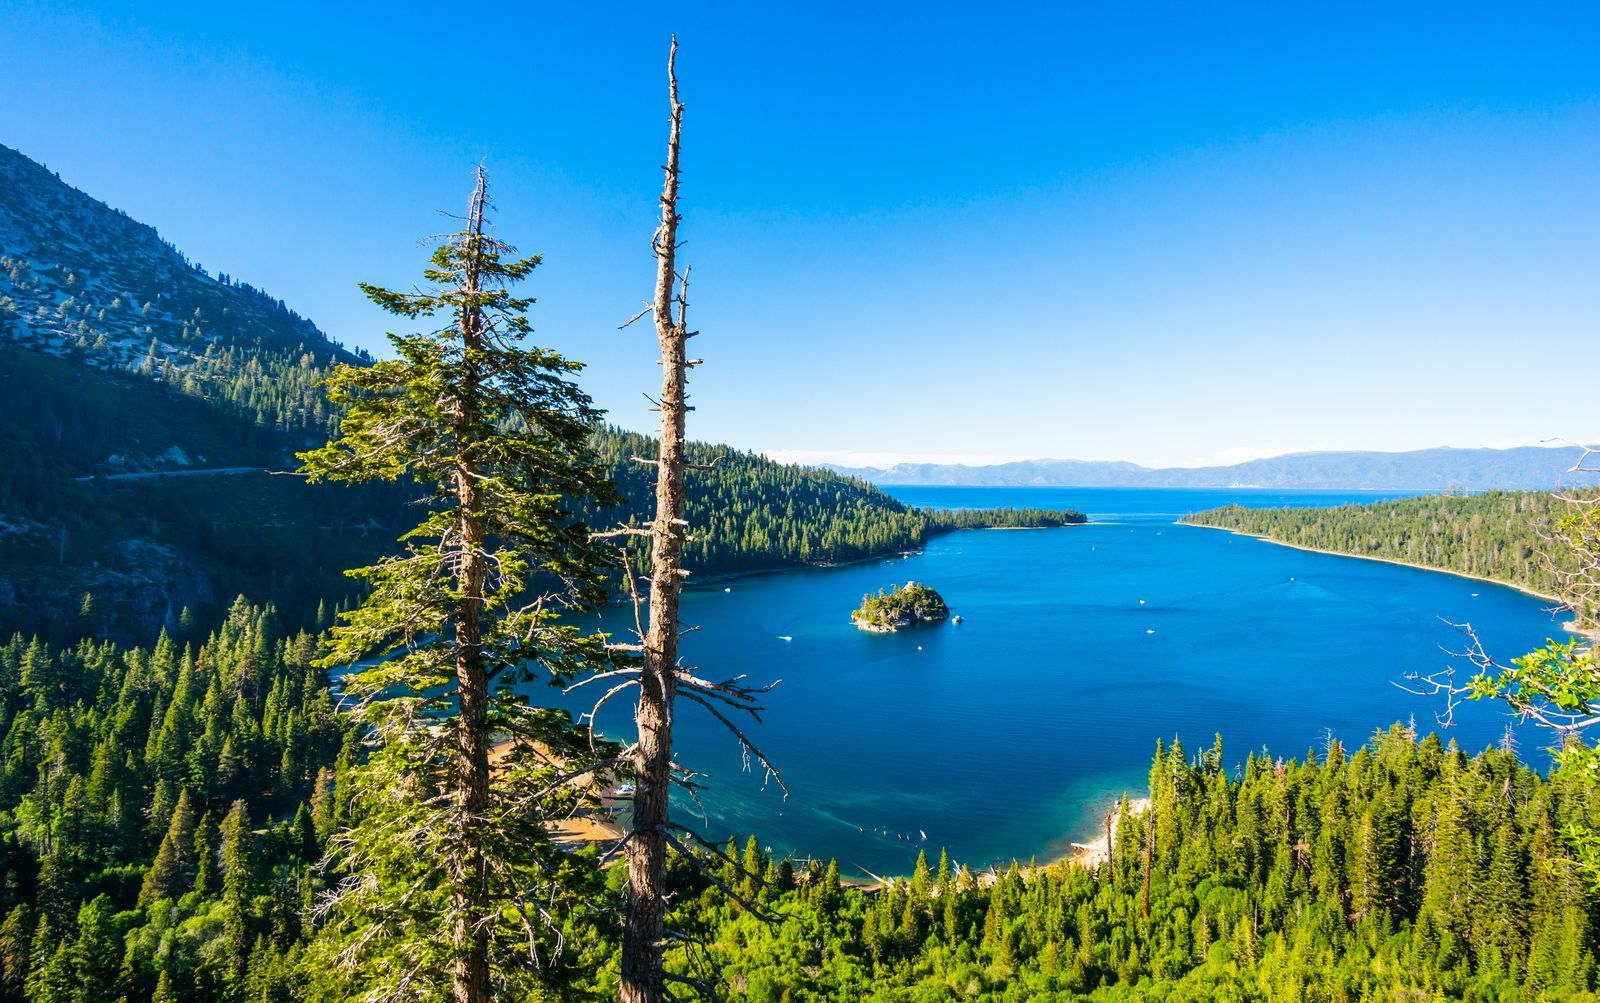 South Lake Tahoe Guide Where To Stay What To Do And The Best Places To Eat And Drink In 2020 Lake Tahoe California South Lake Tahoe Ca Lake Tahoe Ca